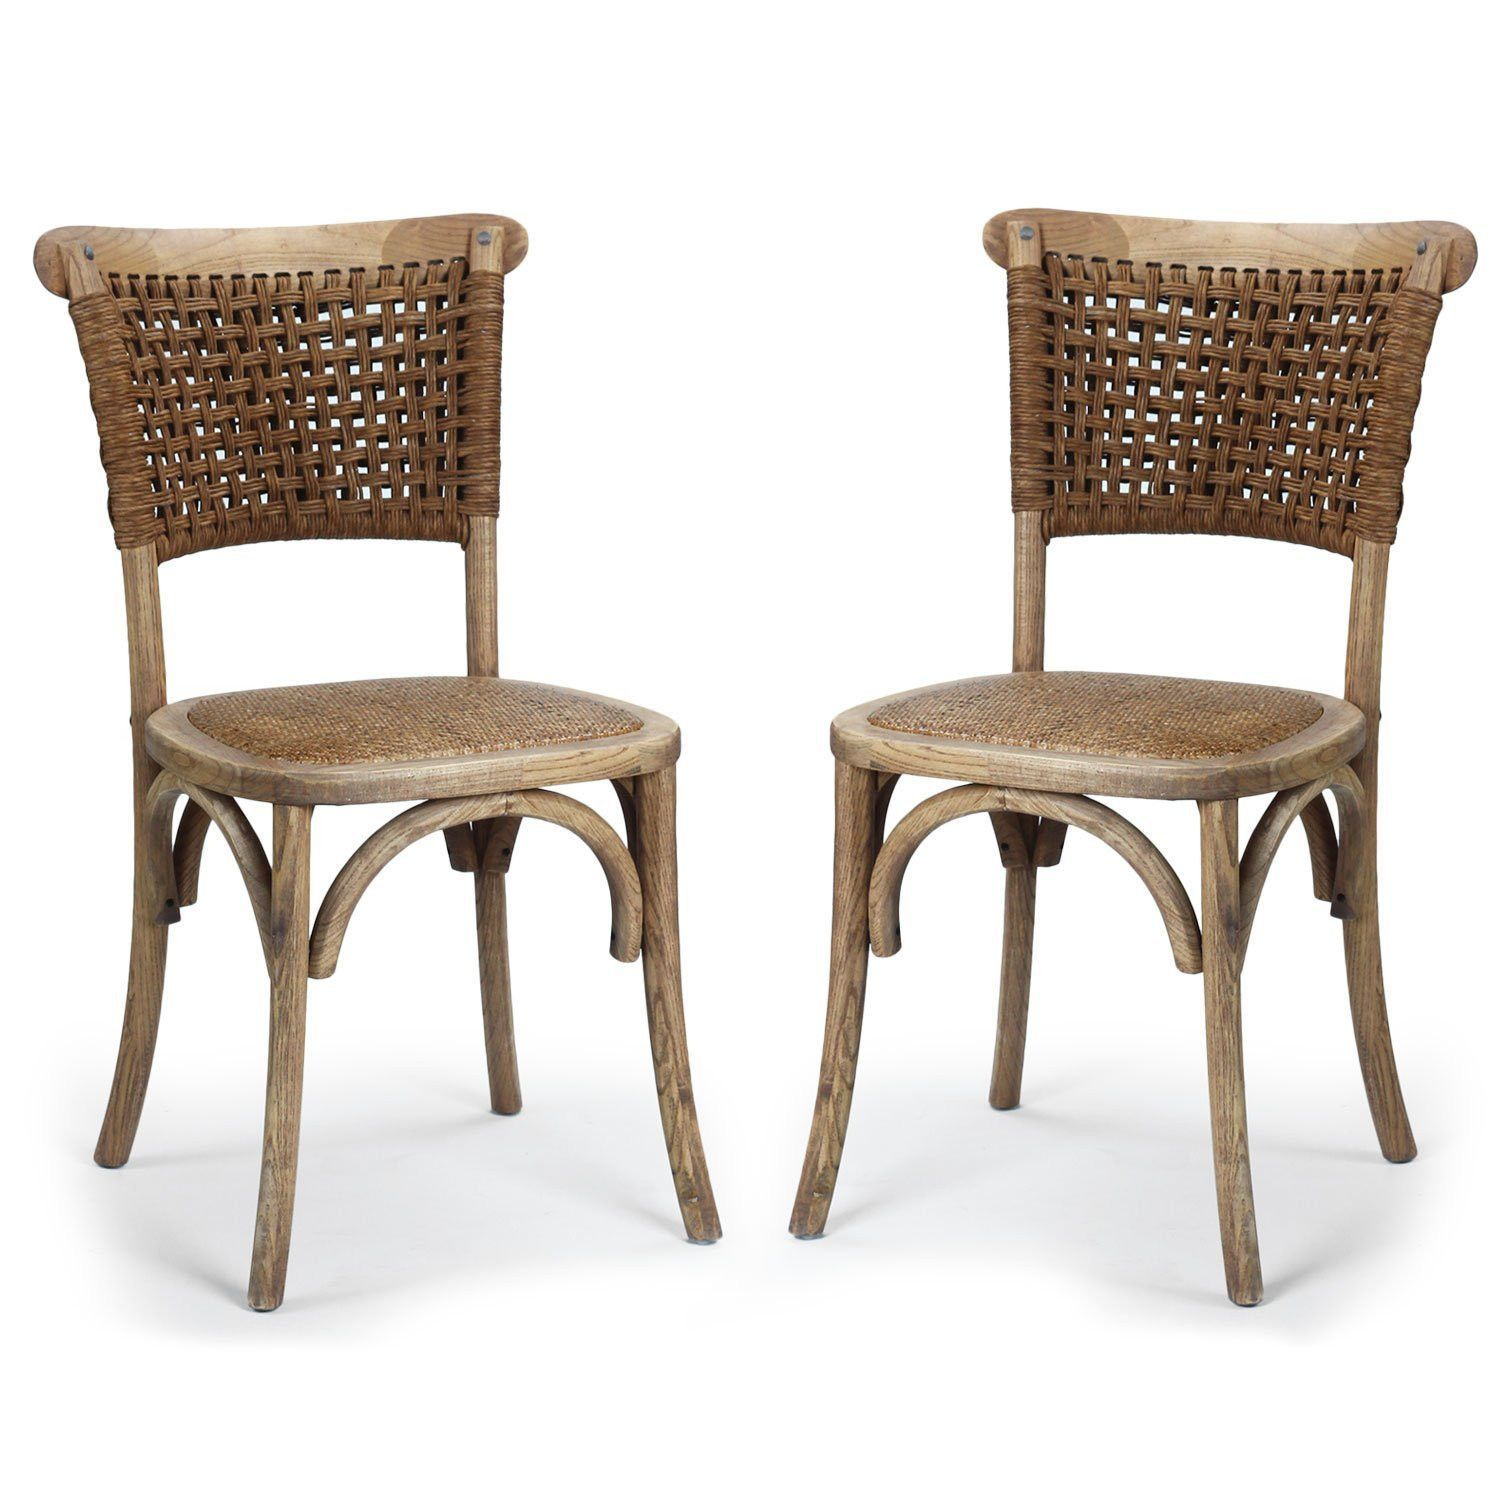 Elm Wood Vintage Style Dining Chair With Rattan Cane Seat And Woven Paper Rope Back